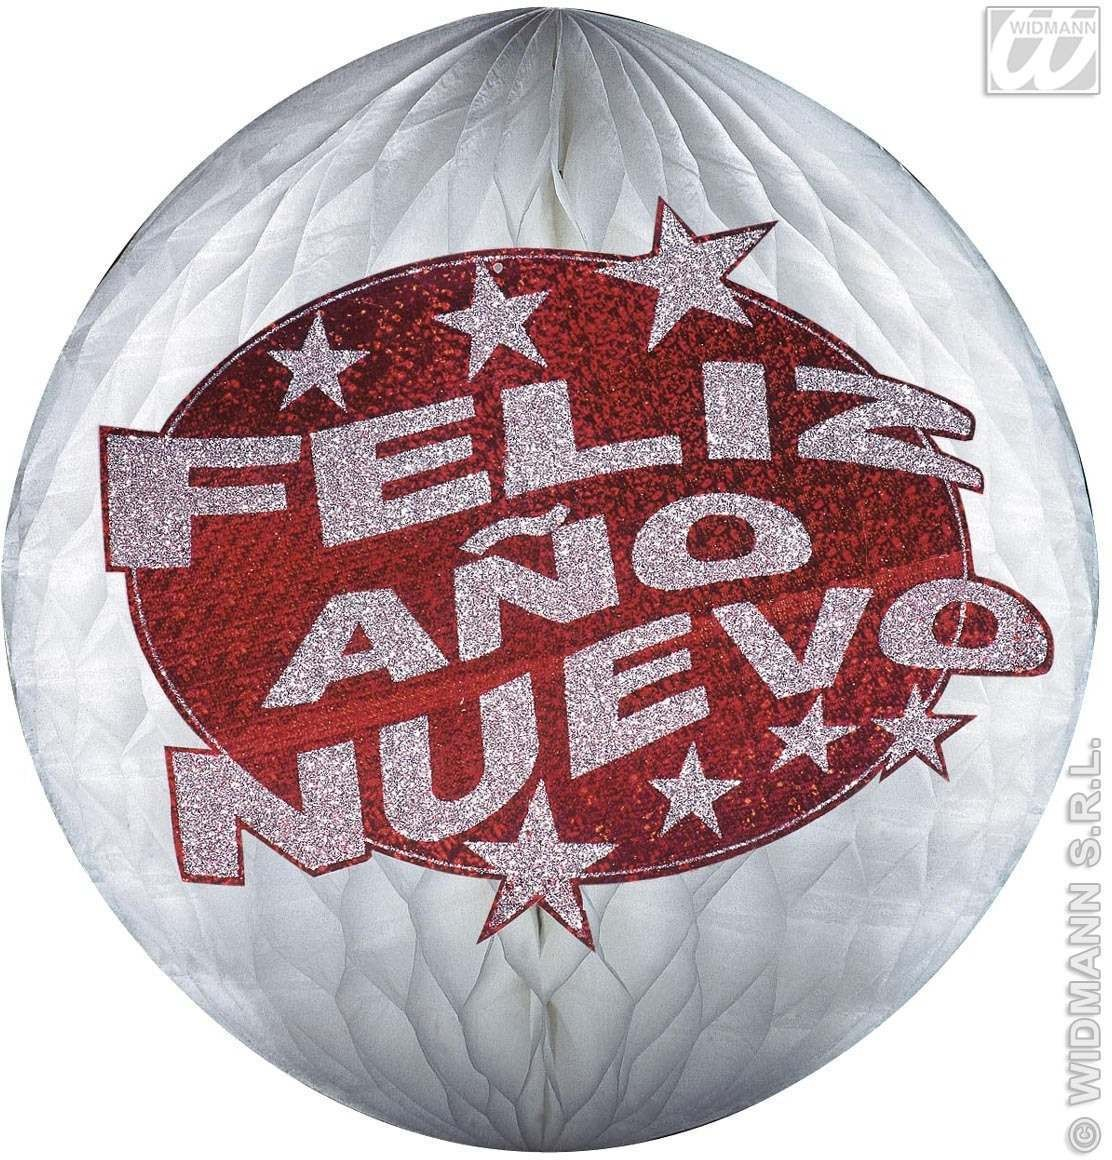 Hologr.Red Feliz Ano Nuevo Honeyc.Pap.Balls Fancy Dress